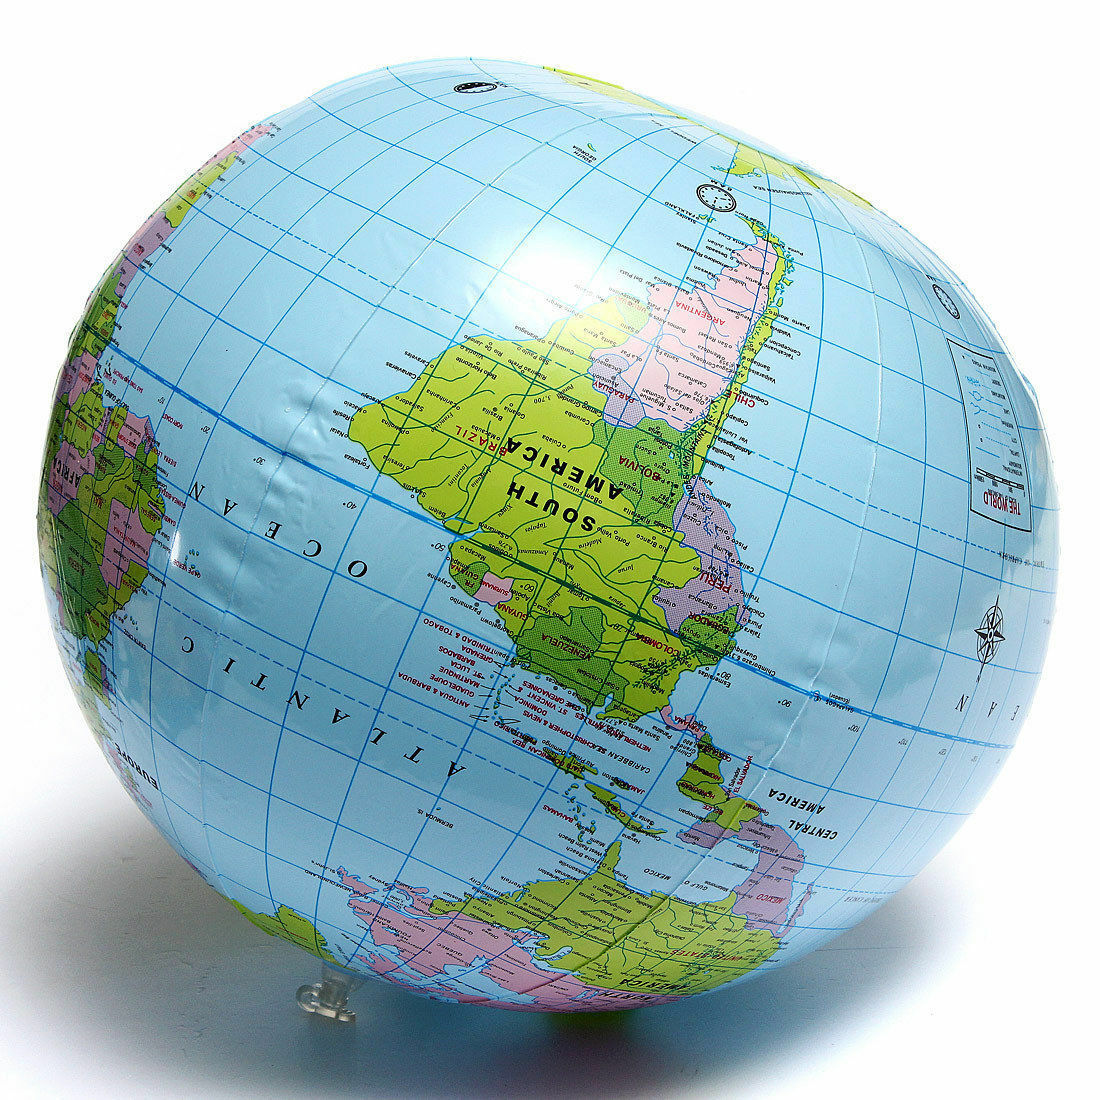 Inflatable Blow Up World Globe Cm Earth Atlas Ball Map Geography - Earth globe map